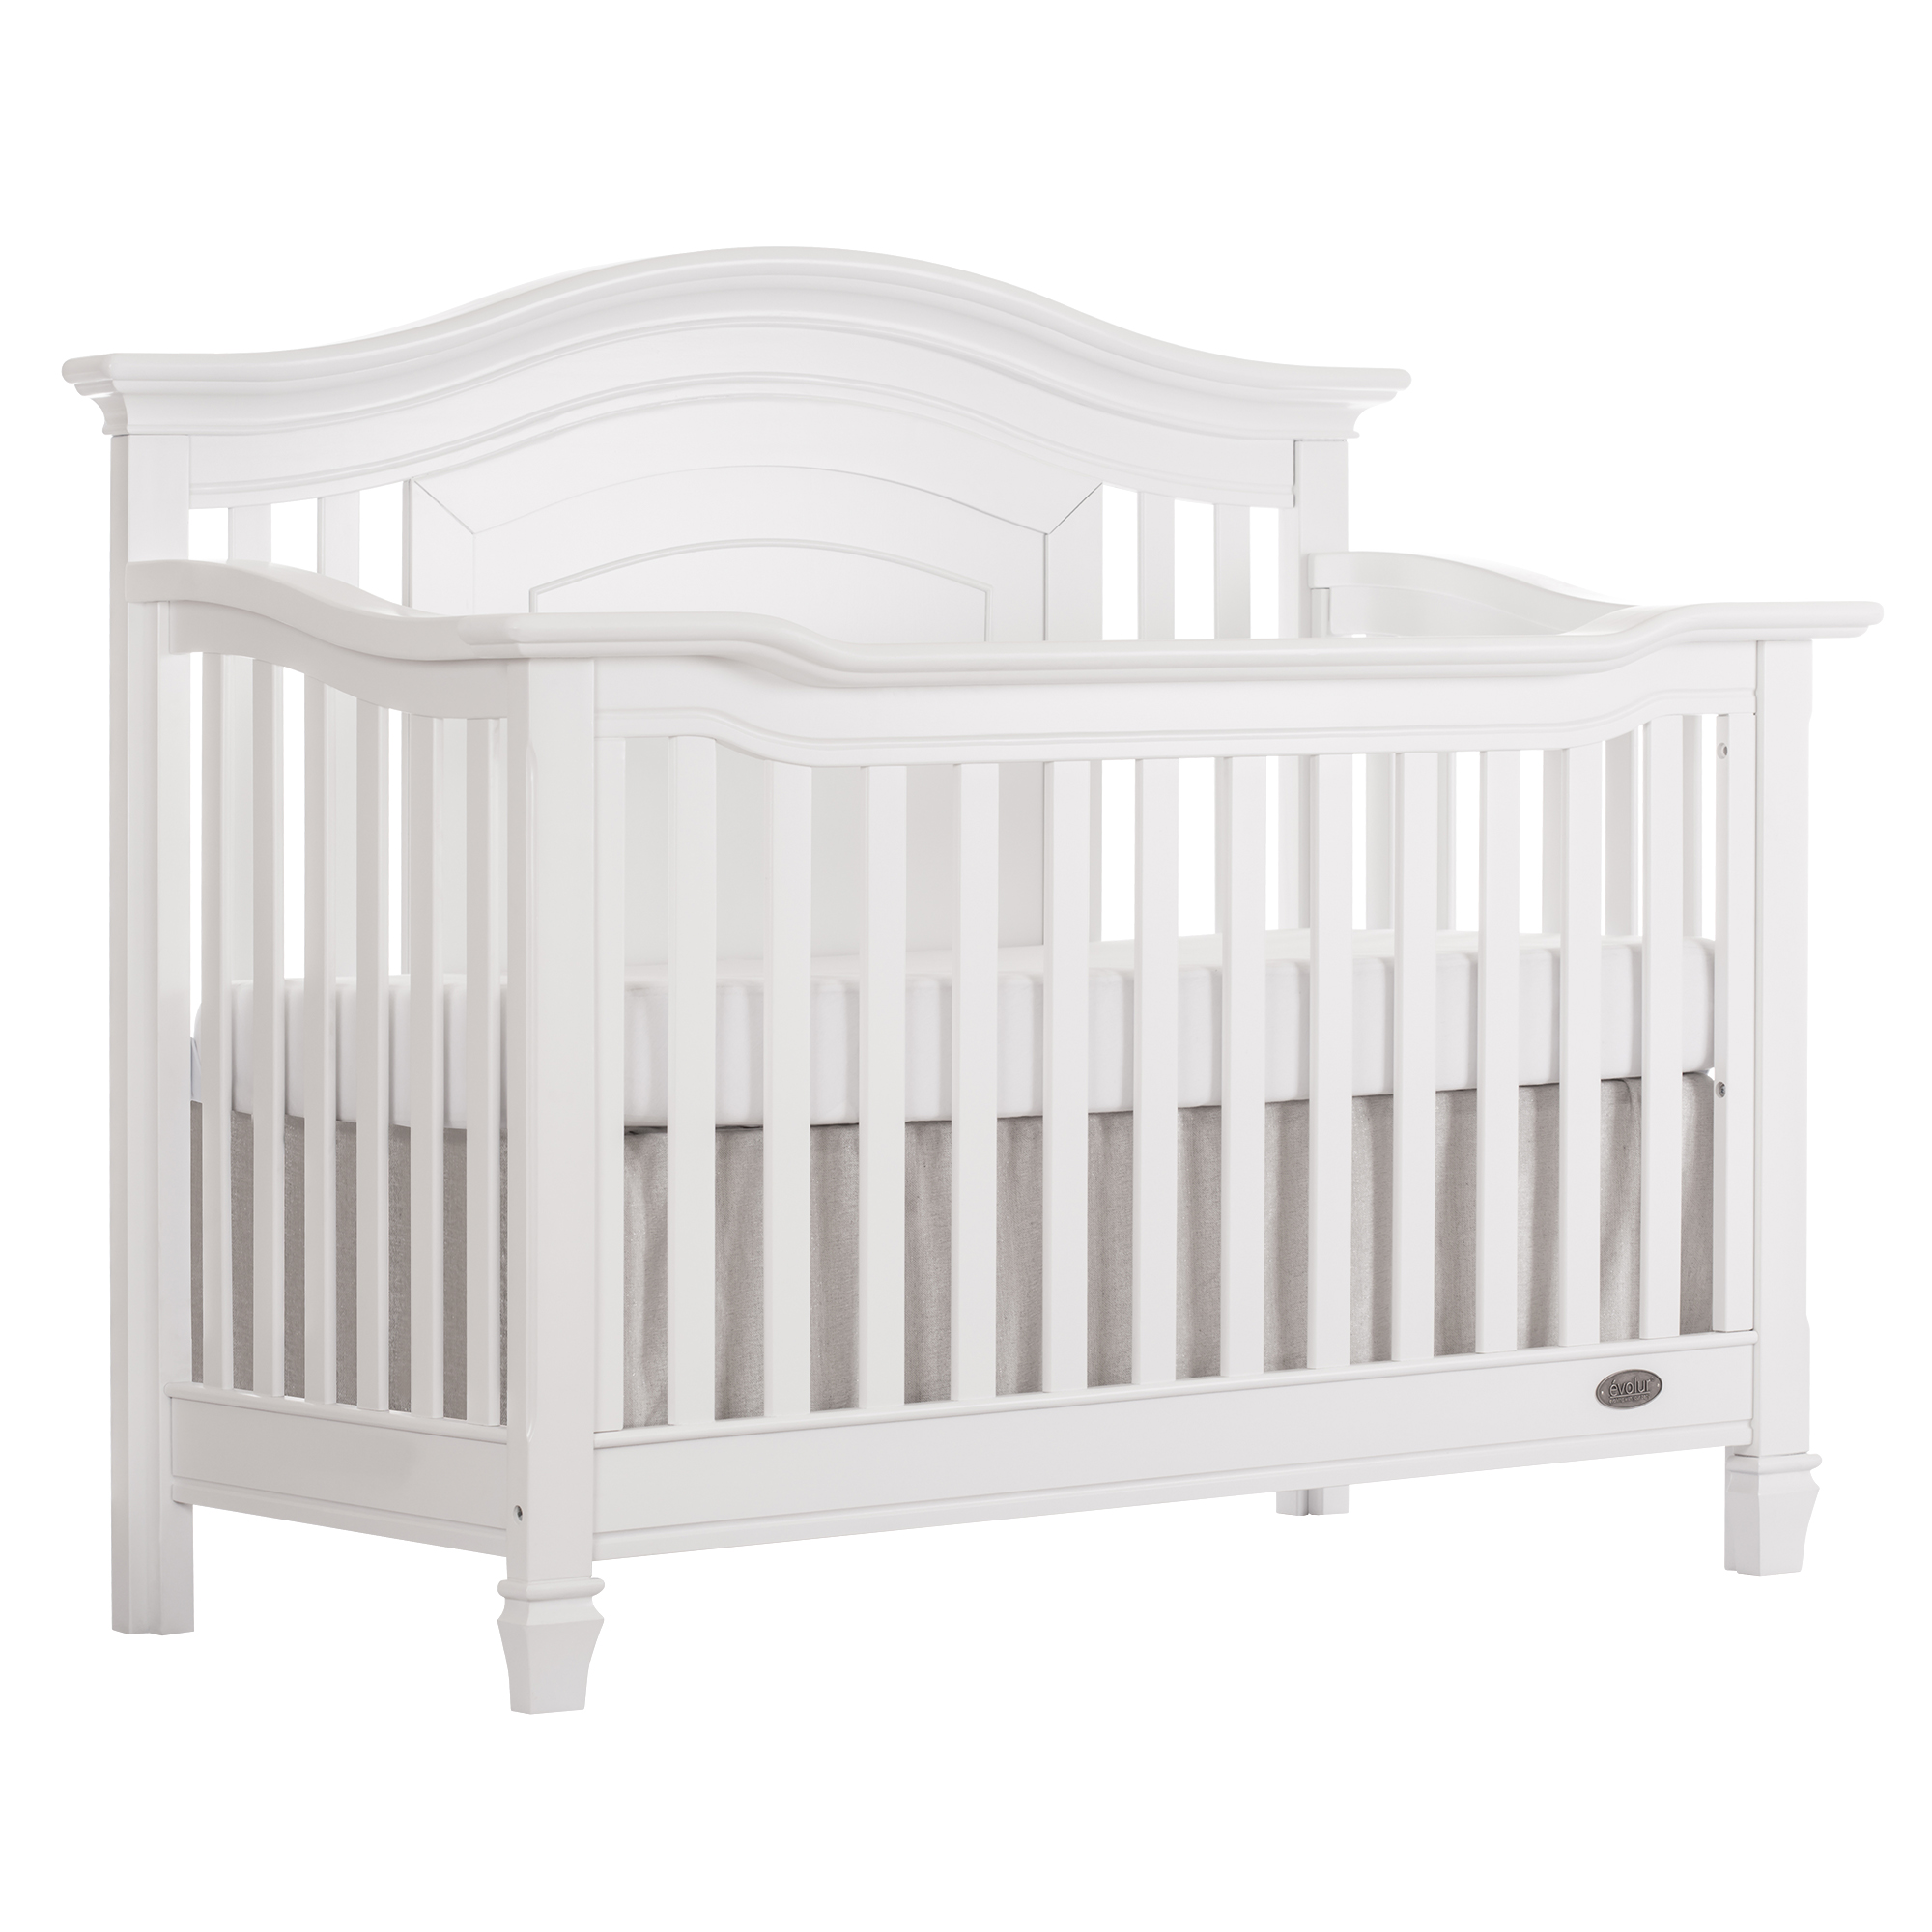 Evolur Fairbanks 5-in-1 Convertible Crib White